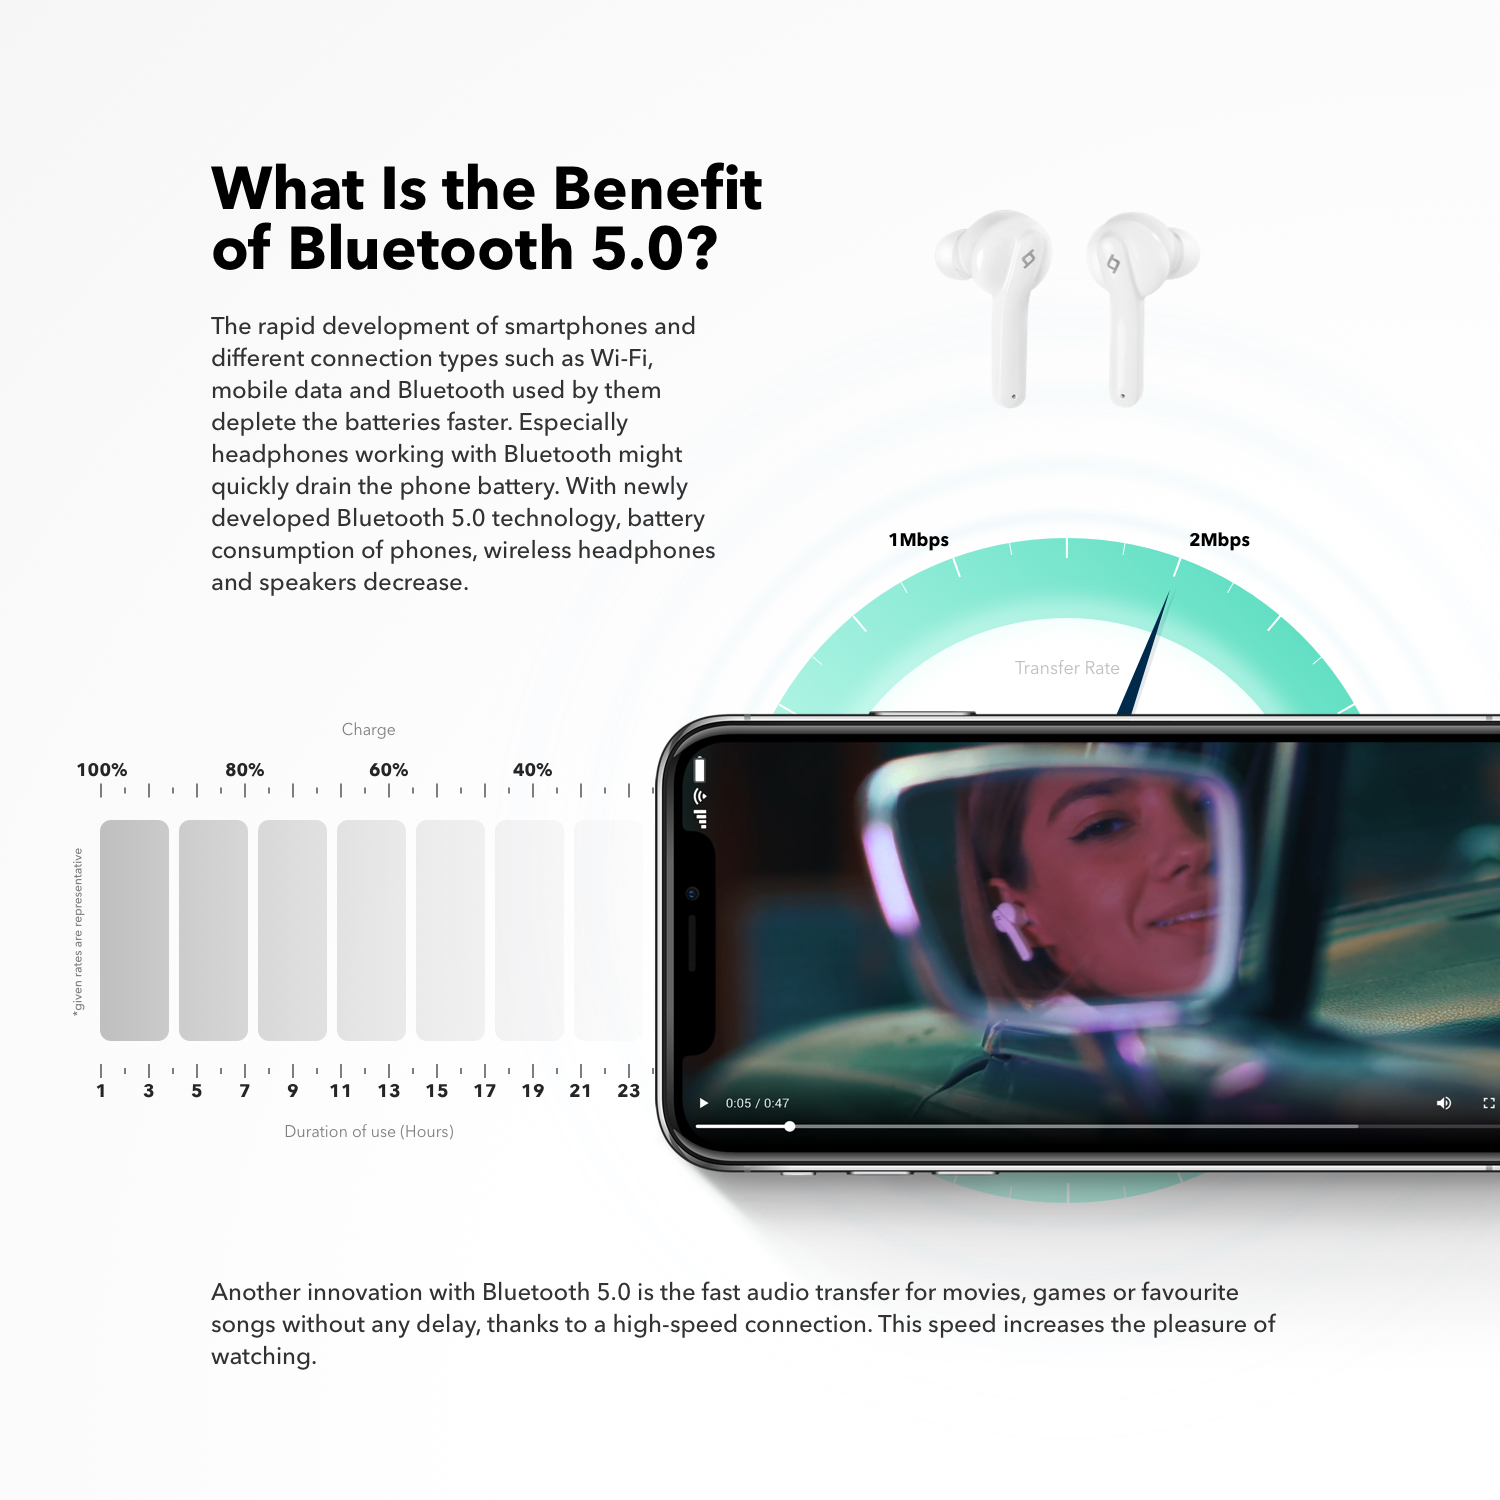 What is the benefit of Bluetooth 5.0